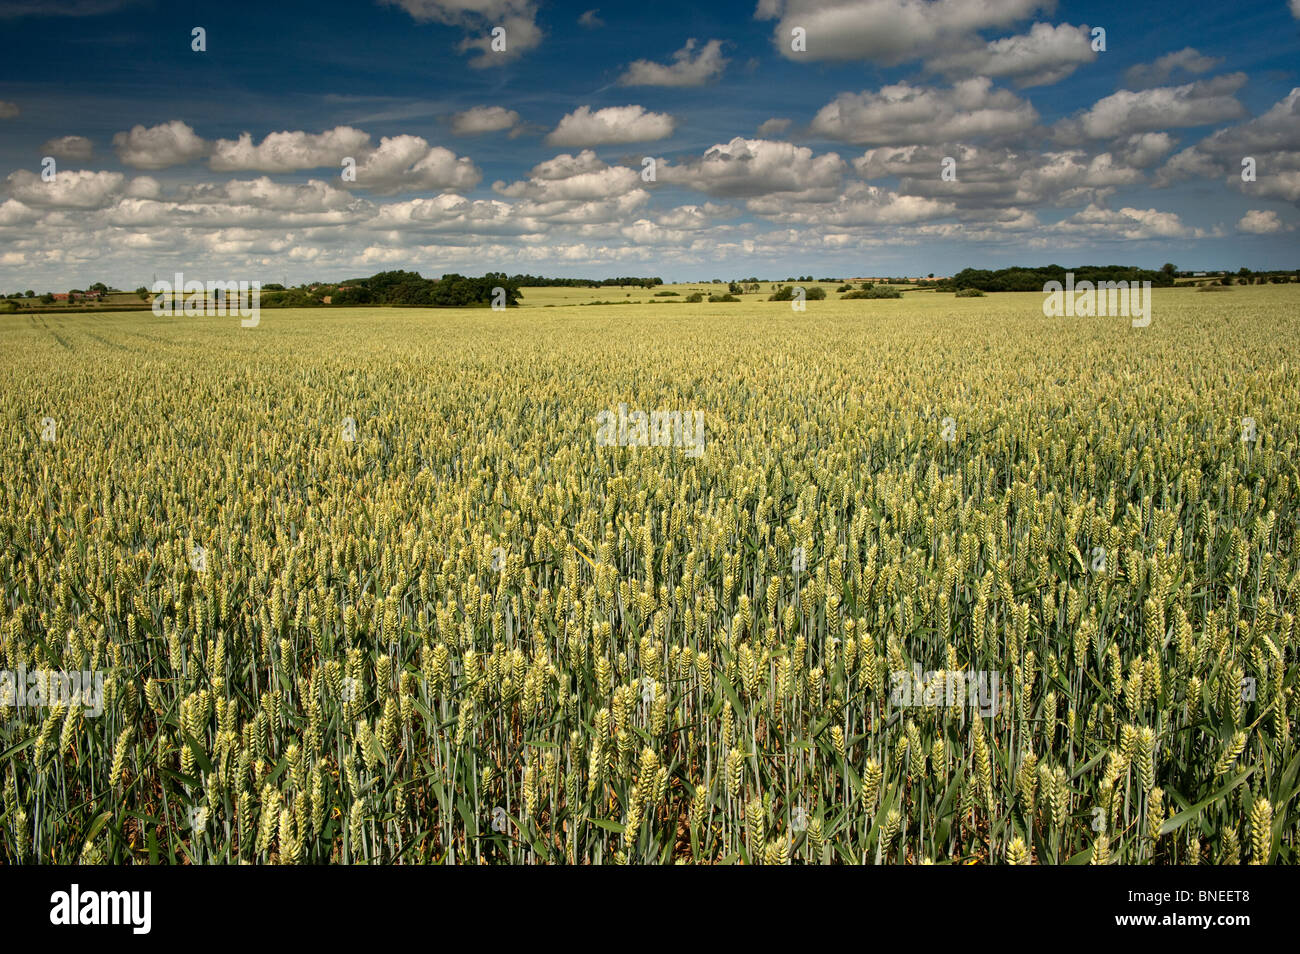 Wheat crop ripening in summer sun. North Yorkshire - Stock Image